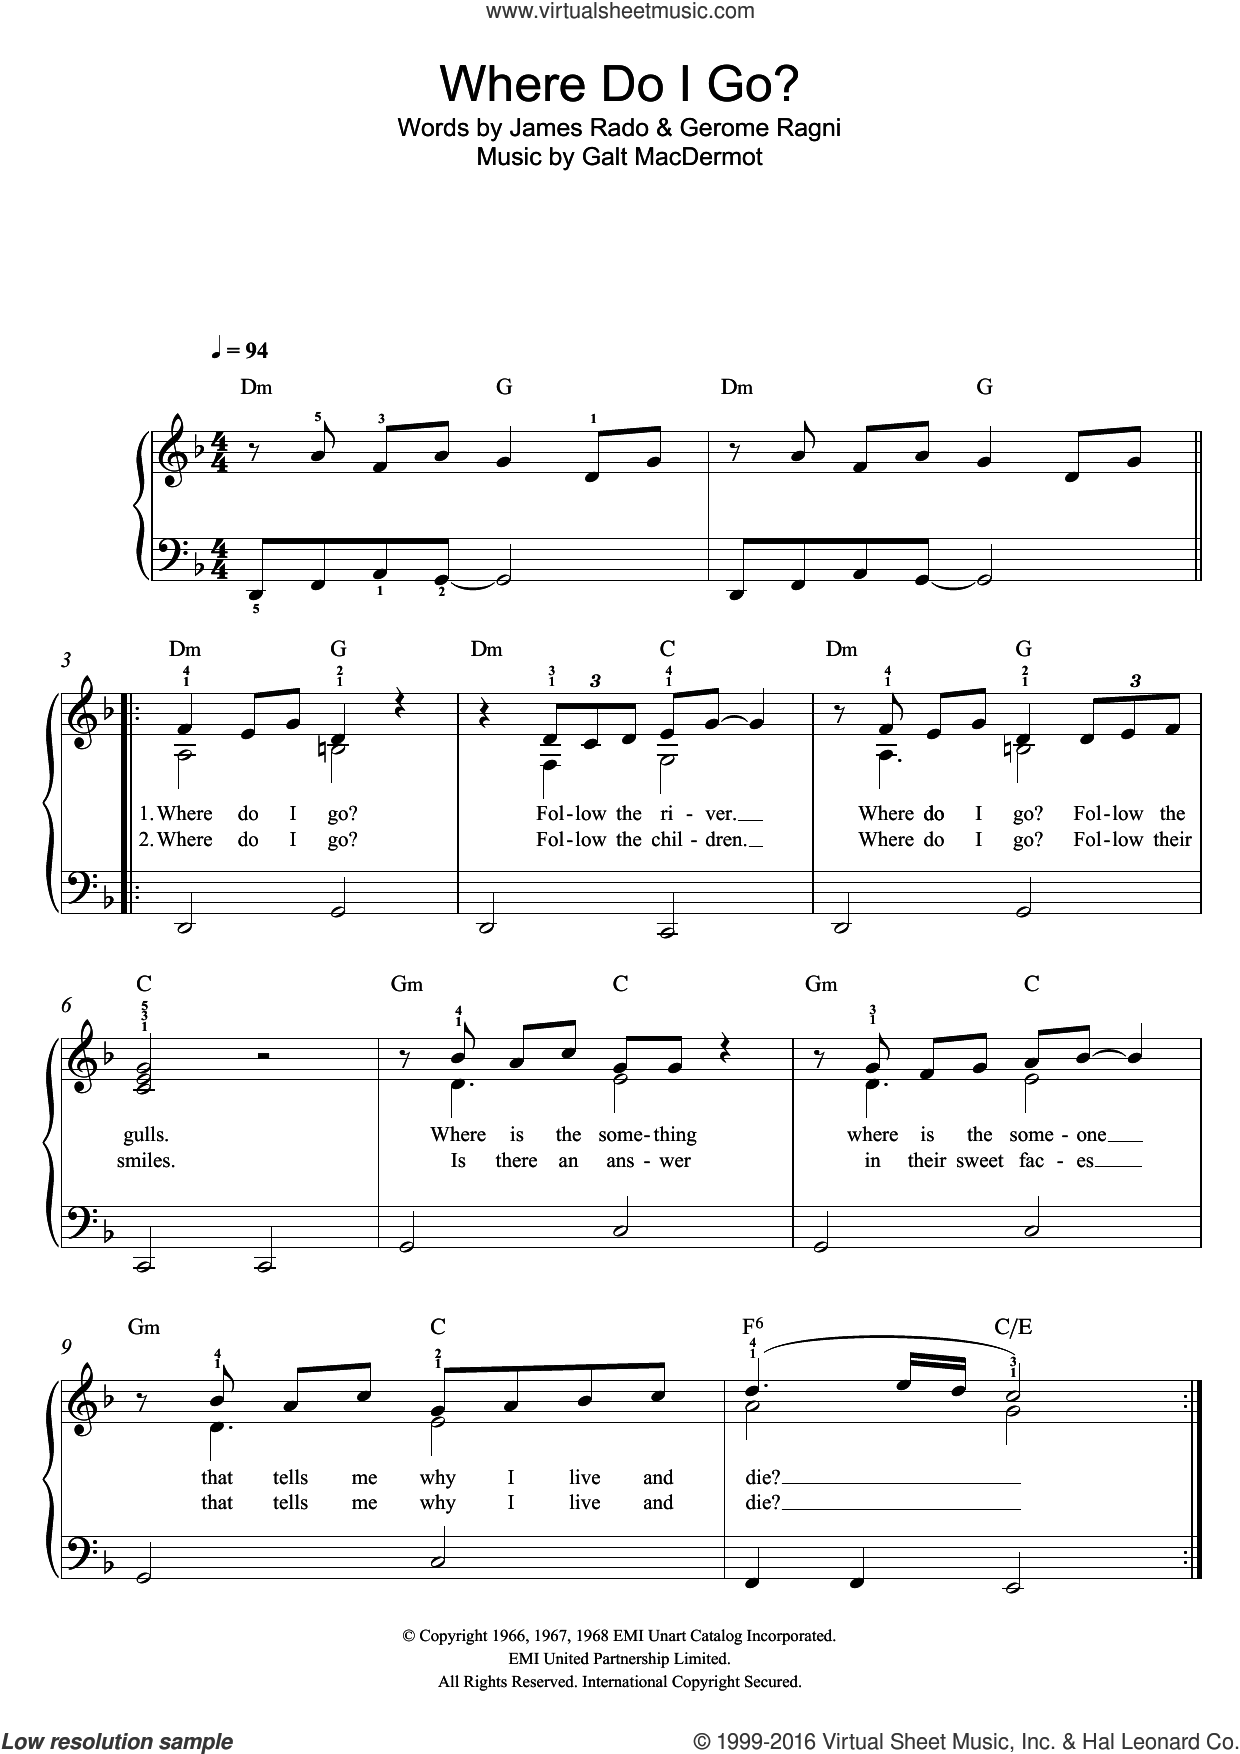 Where Do I Go? (from 'Hair') sheet music for piano solo by Galt MacDermot, Gerome Ragni and James Rado, easy skill level